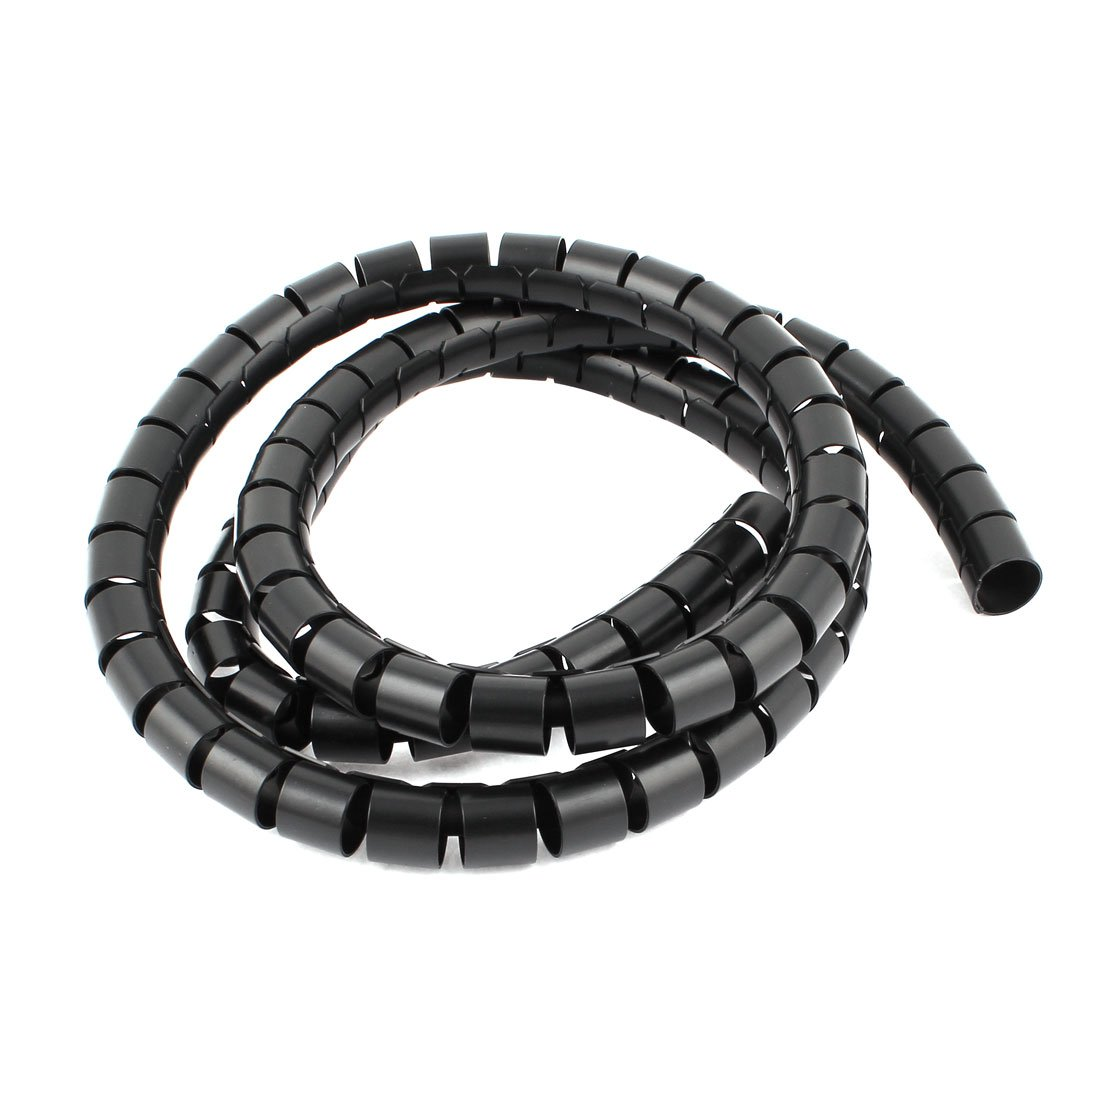 uxcell Flexible Spiral Tube Cable Wire Wrap PC Cord Management 1.5M 5Ft Black